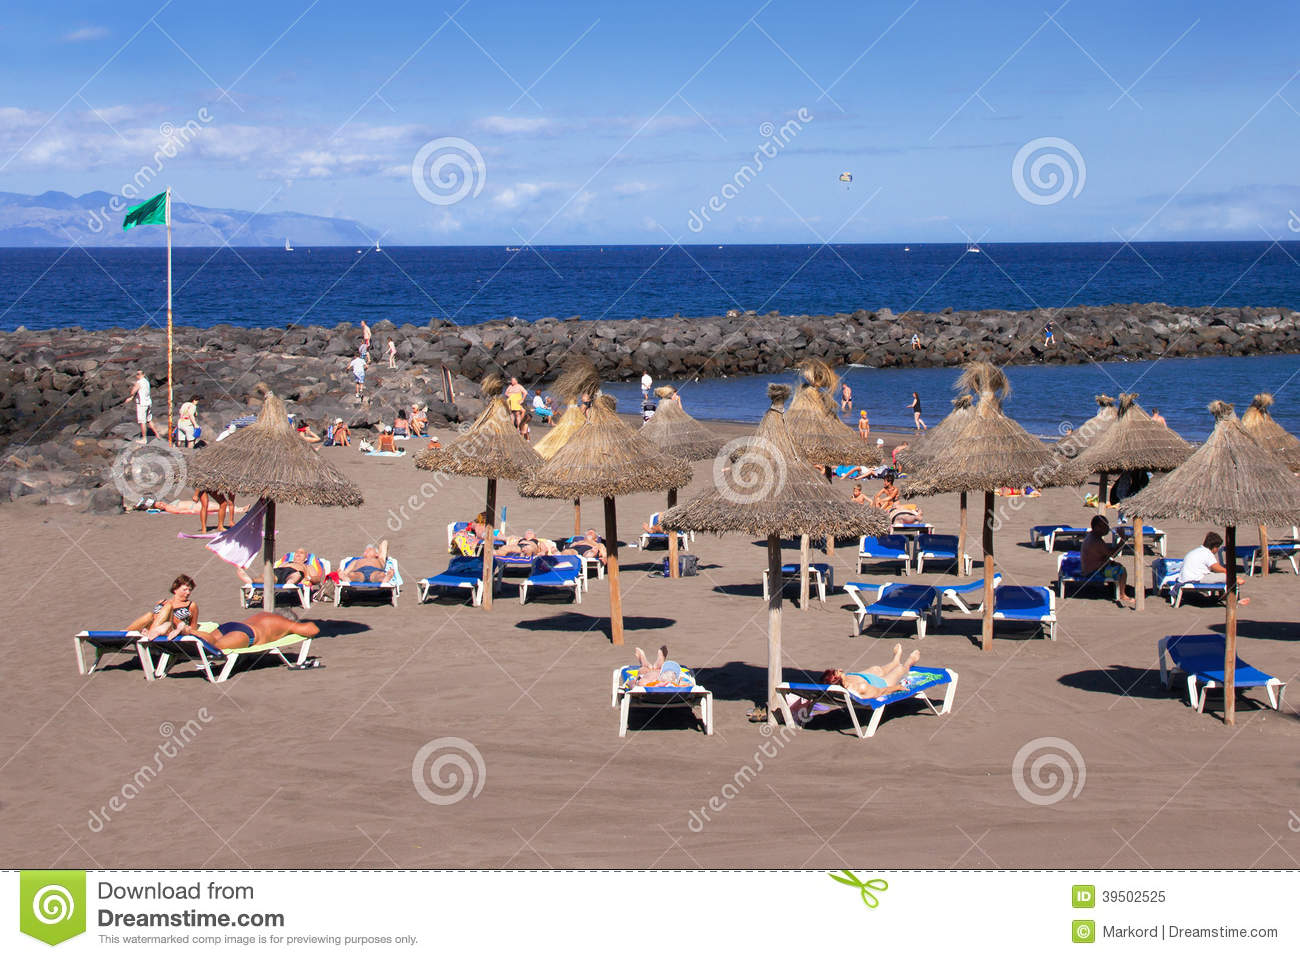 Tourists are resting at the sand beach.